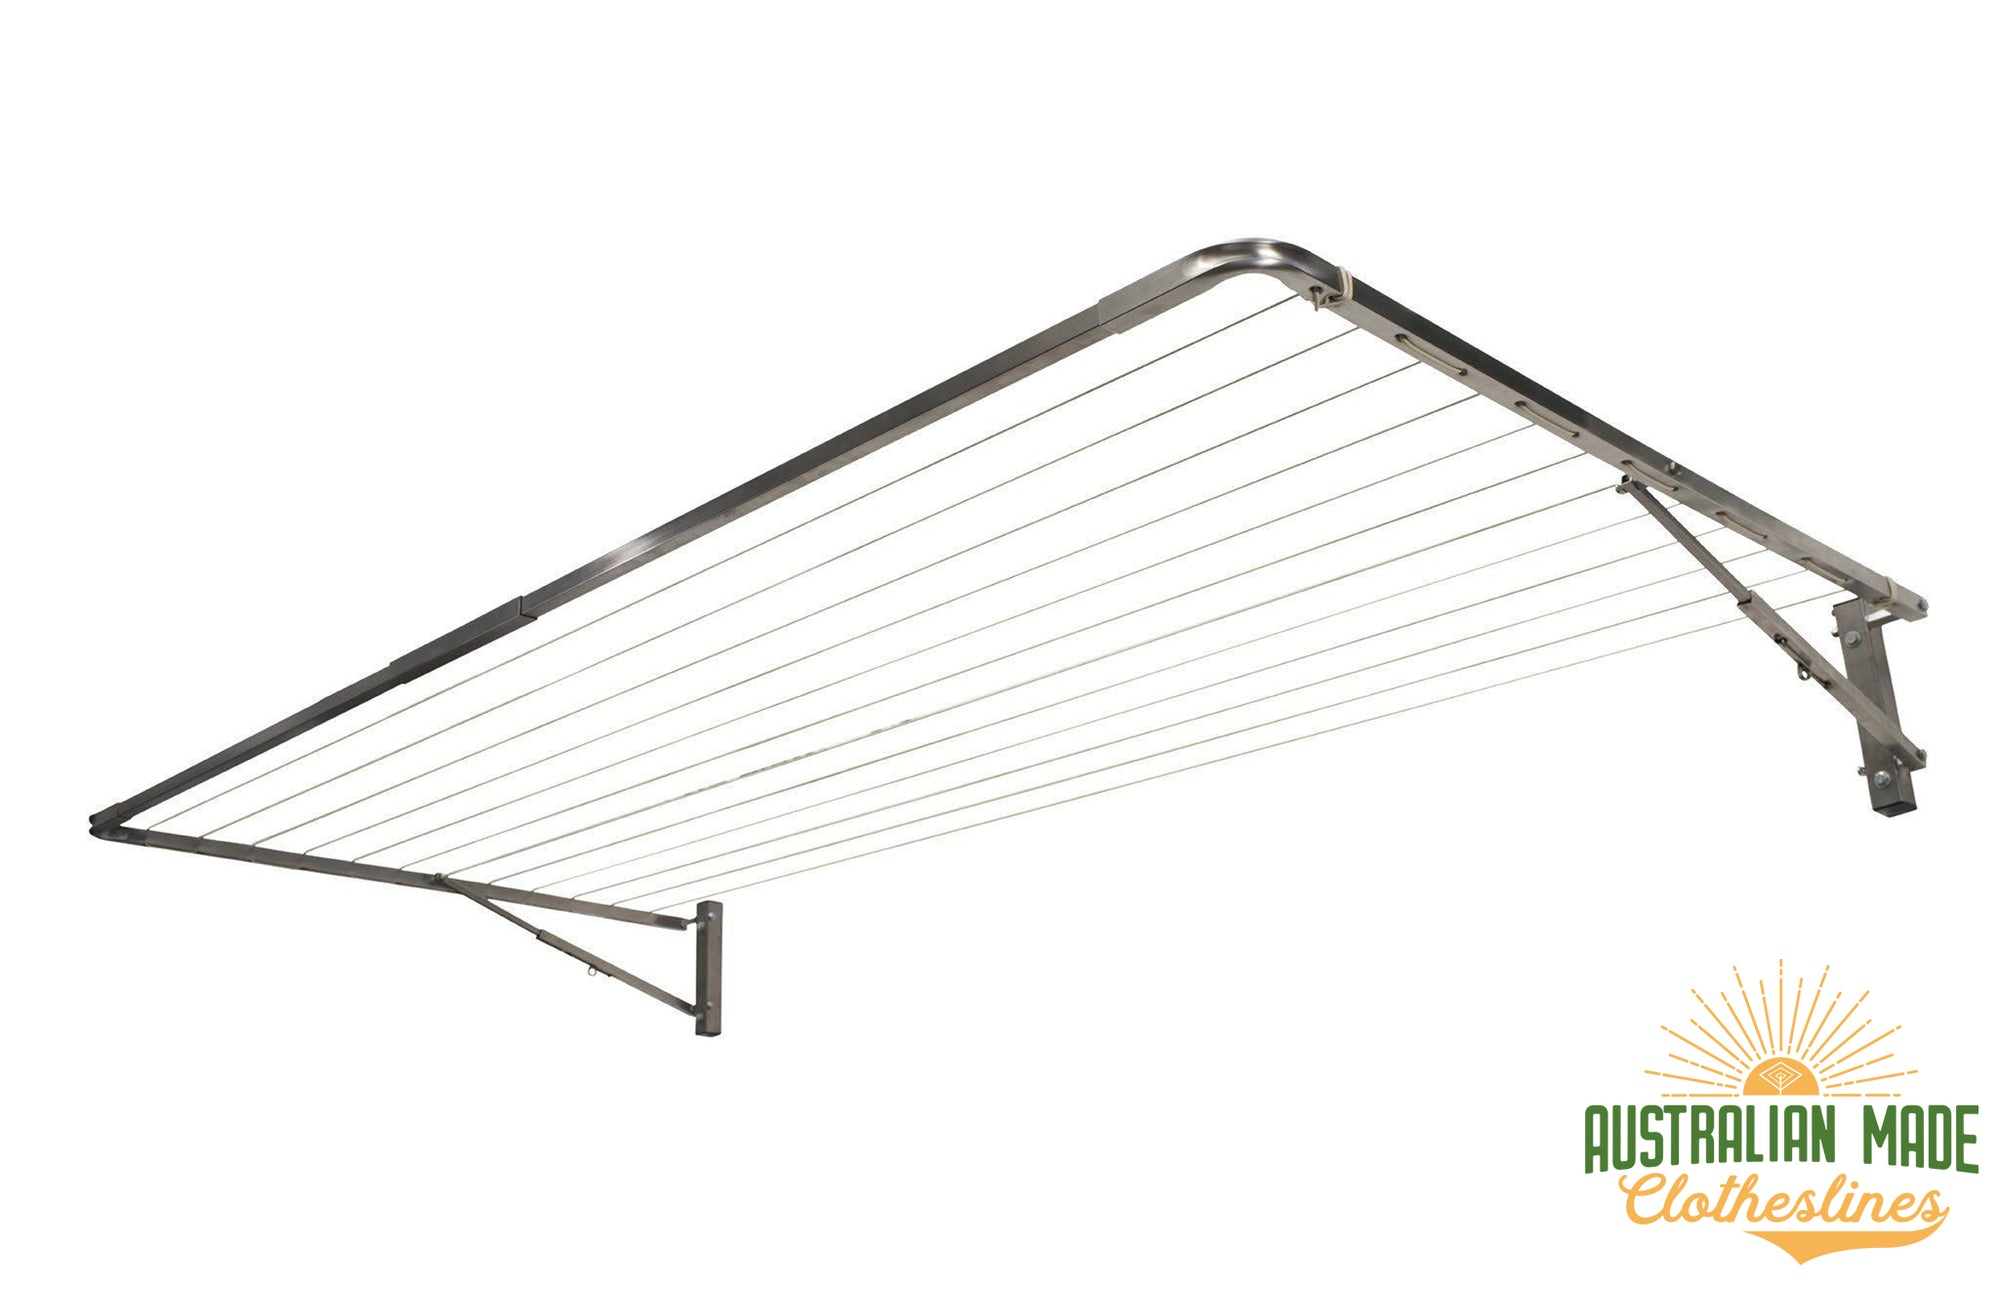 Eco 300 Stainless Steel Clothesline - Stainless Steel - Australian Made Clotheslines